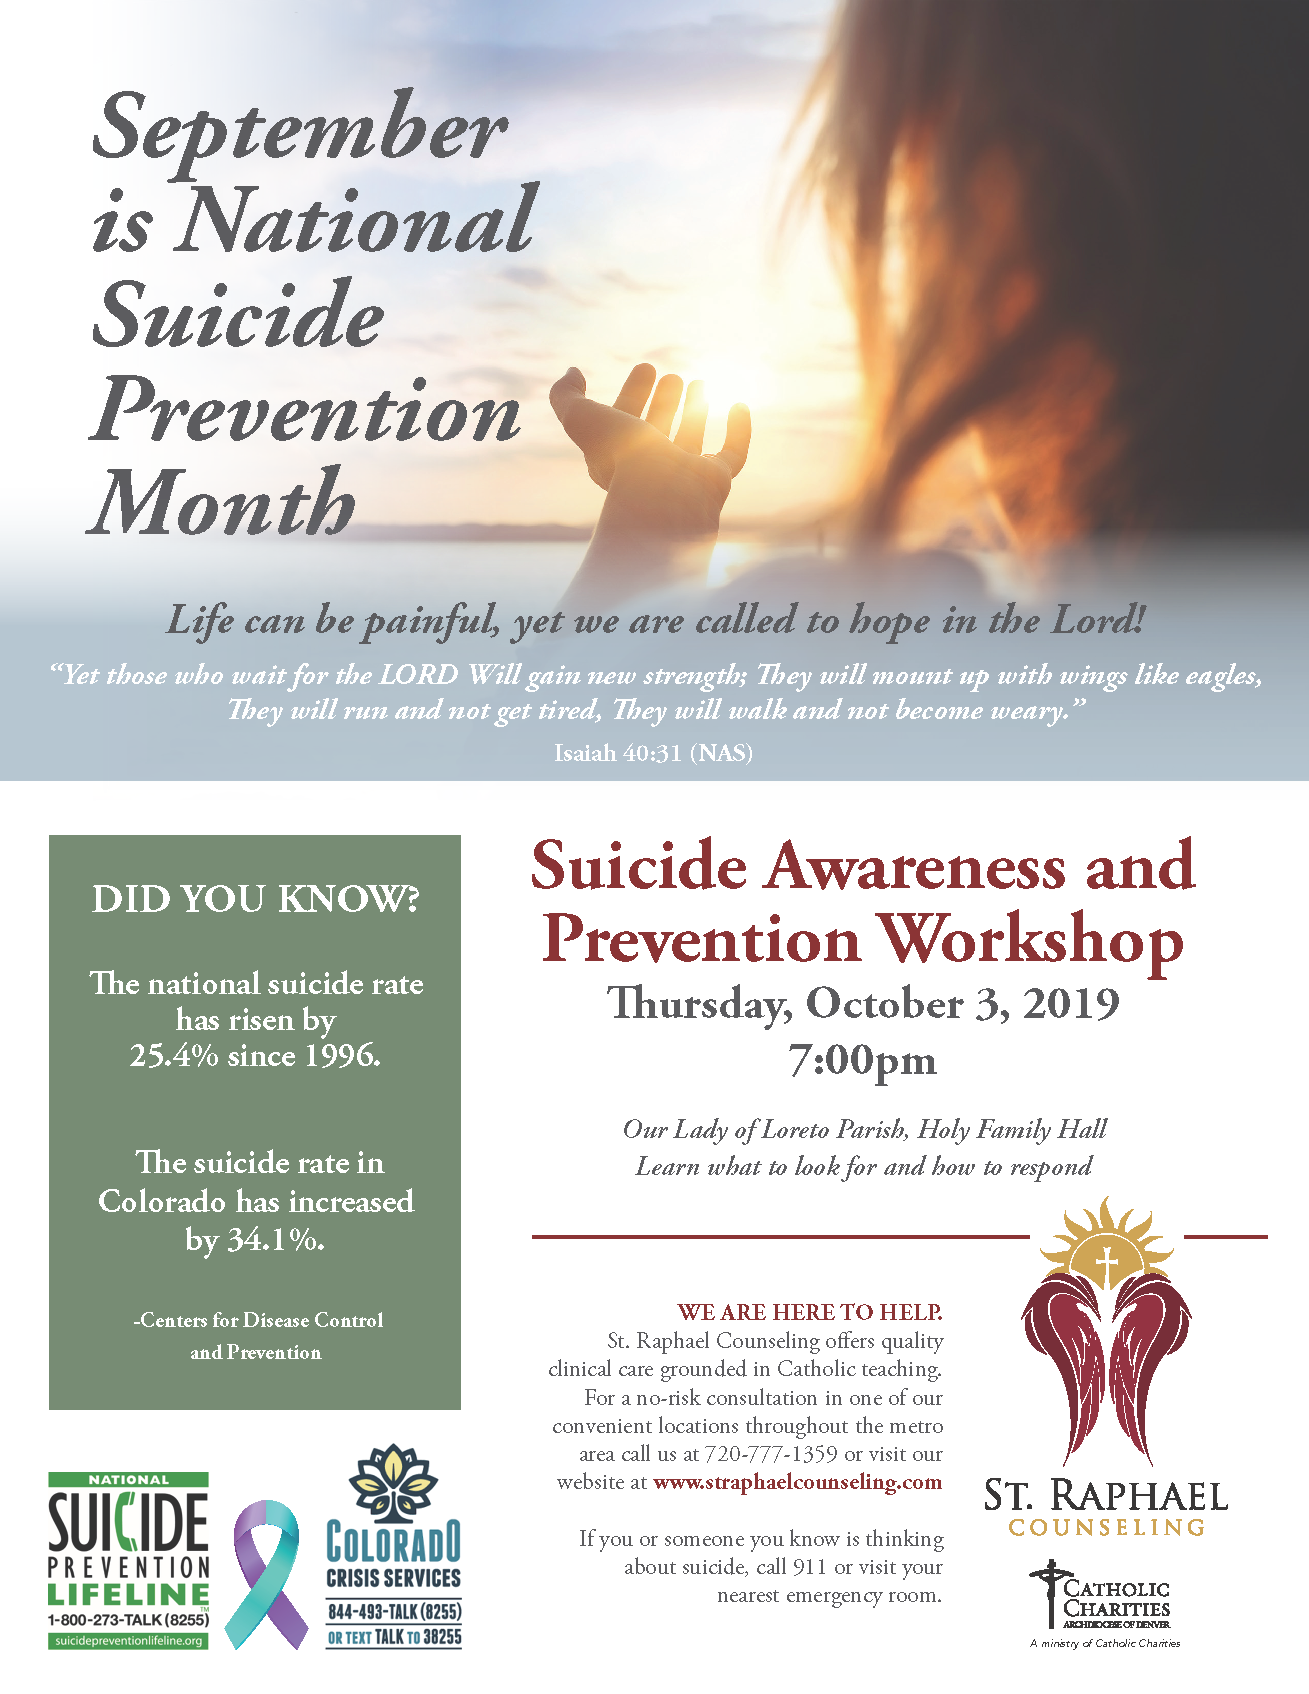 Suicide prevention flyer.png